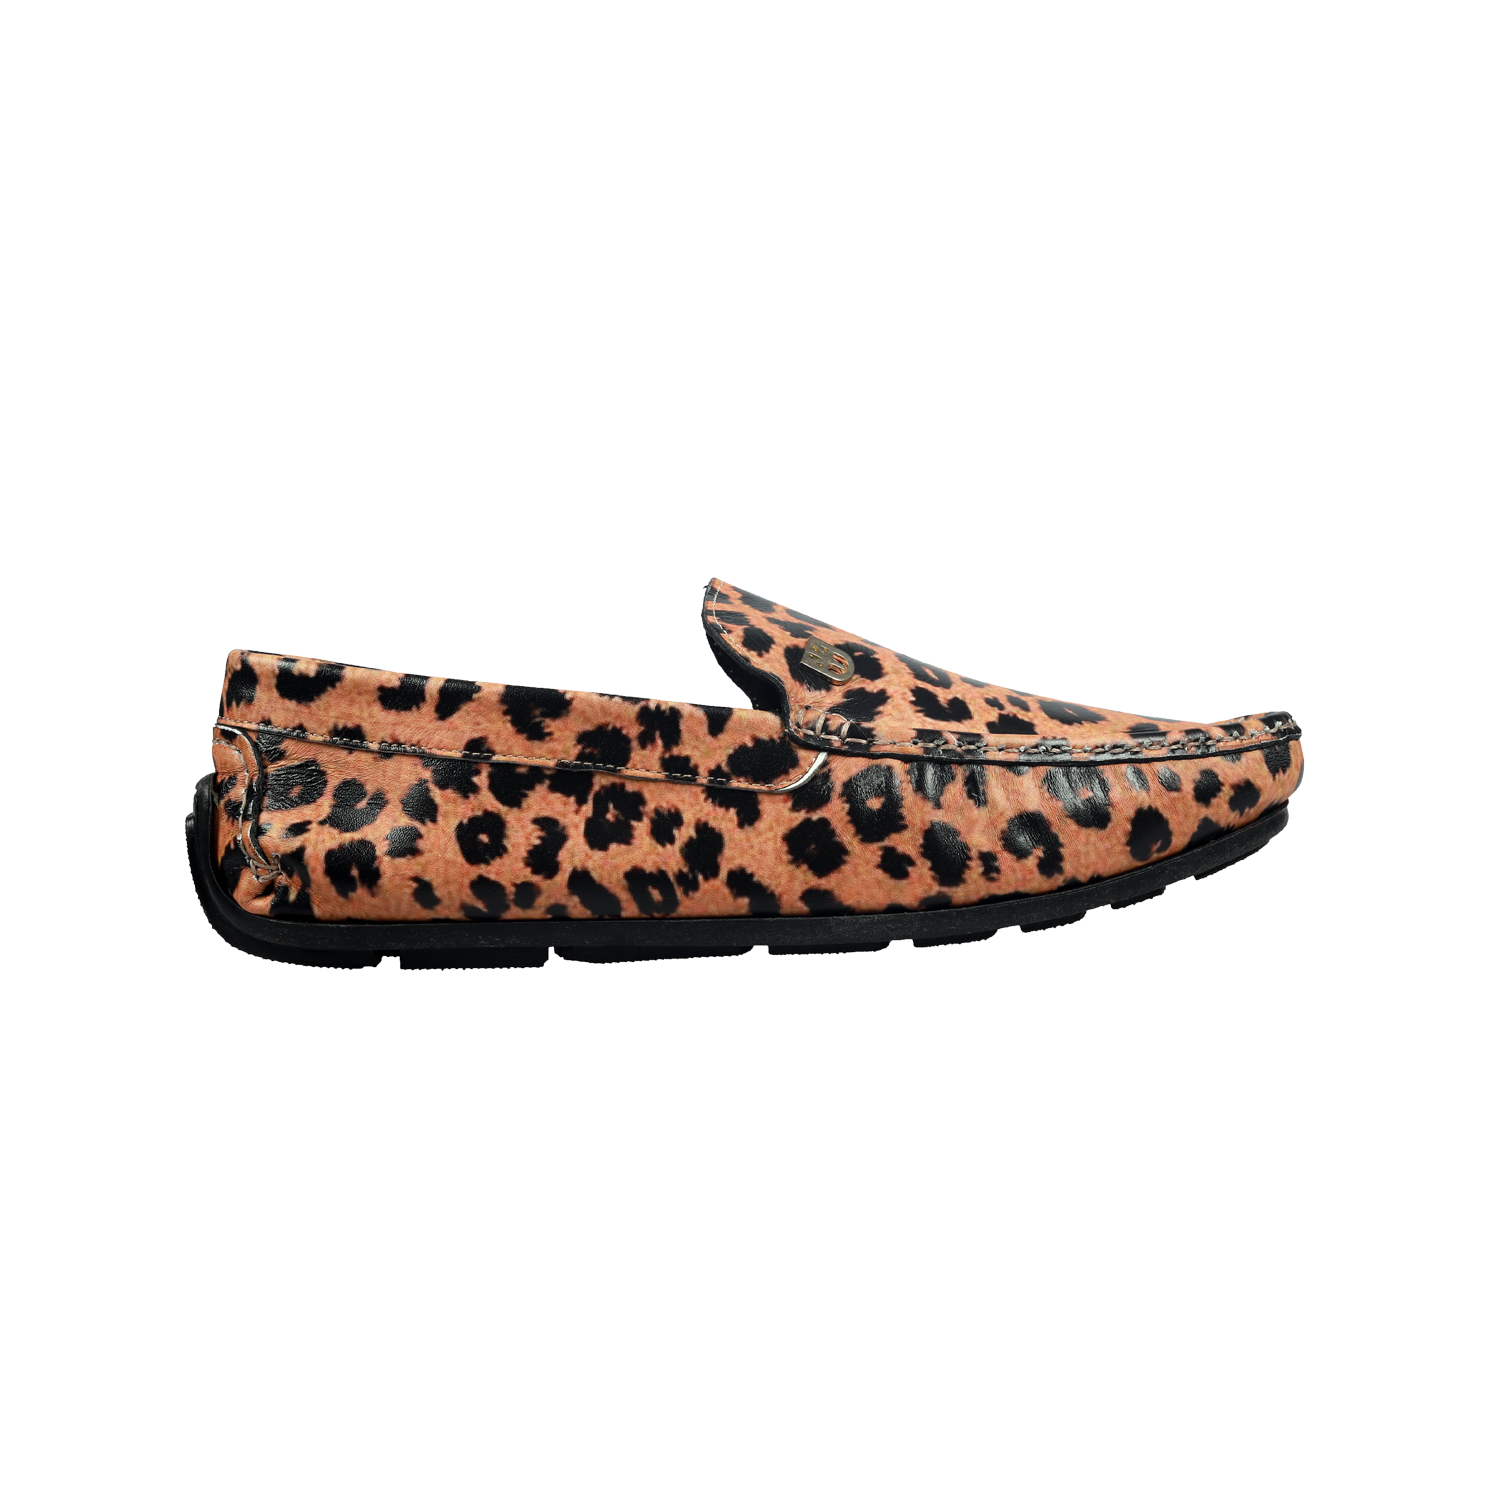 Muet Yellow/Black Leather Leopard Print Casual Leather Loafers for Men